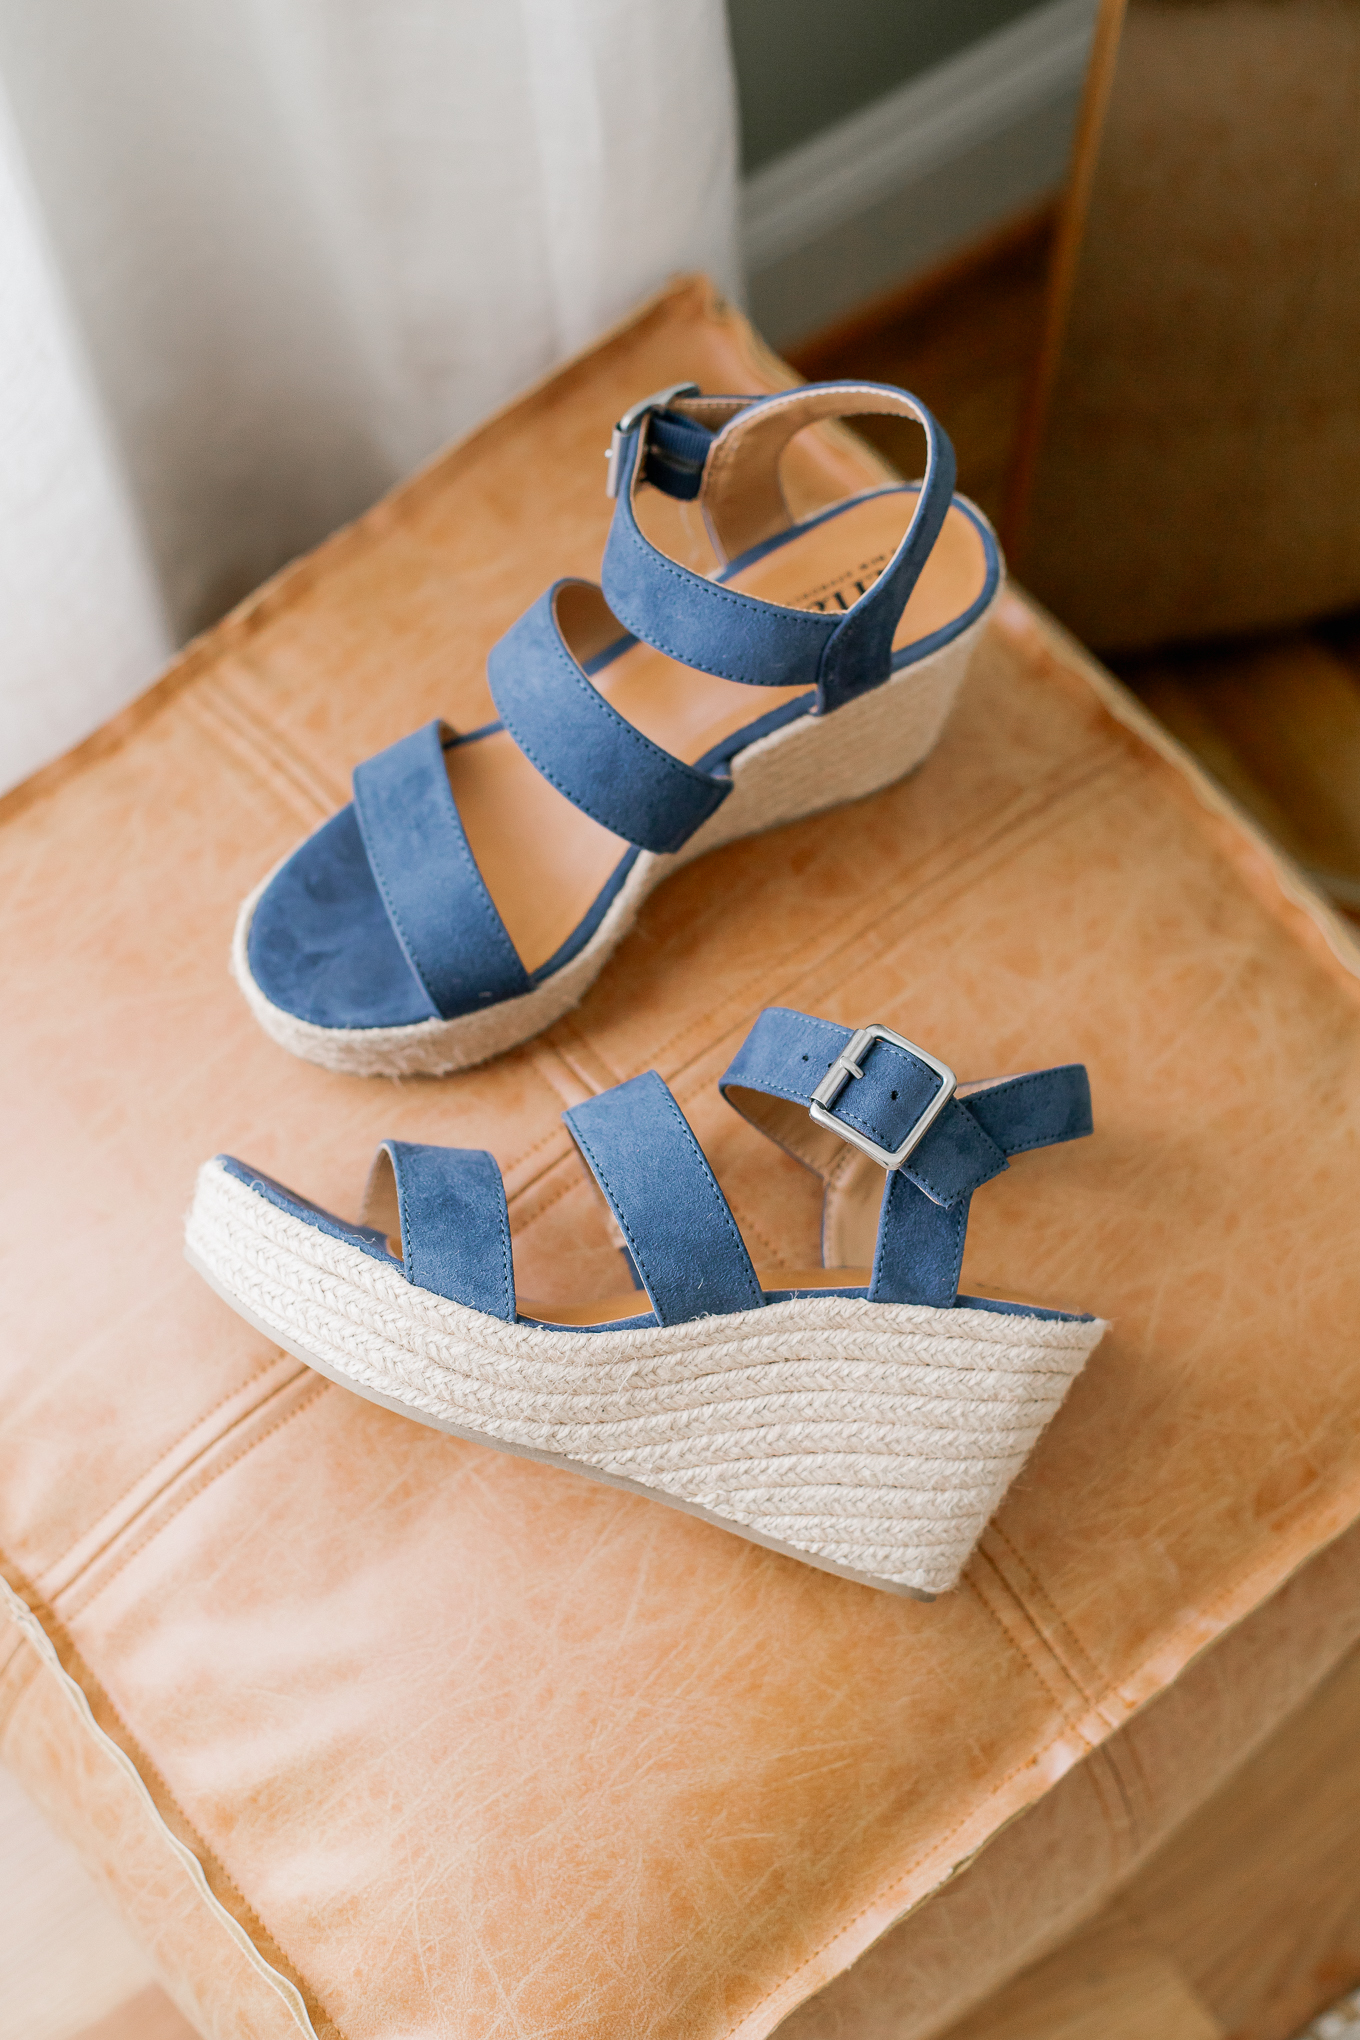 The BEST Affordable Spring Sandals for Women   Blue Suede Espadrilles   Louella Reese